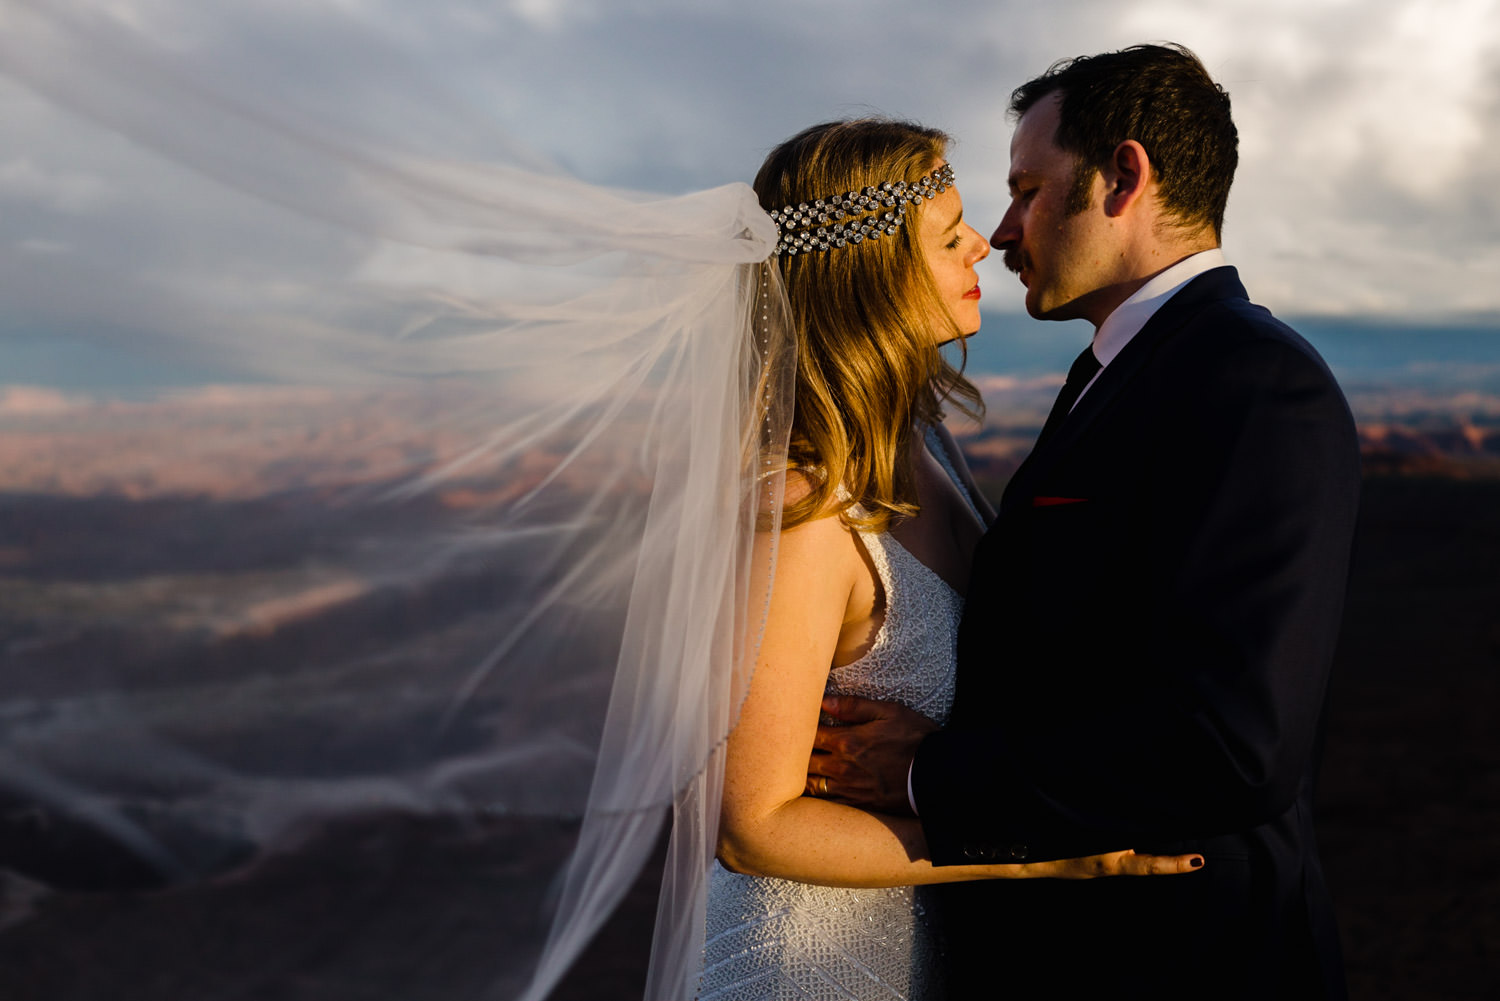 Canyonlands National Park Wedding bride's veil blowing in the wind photo